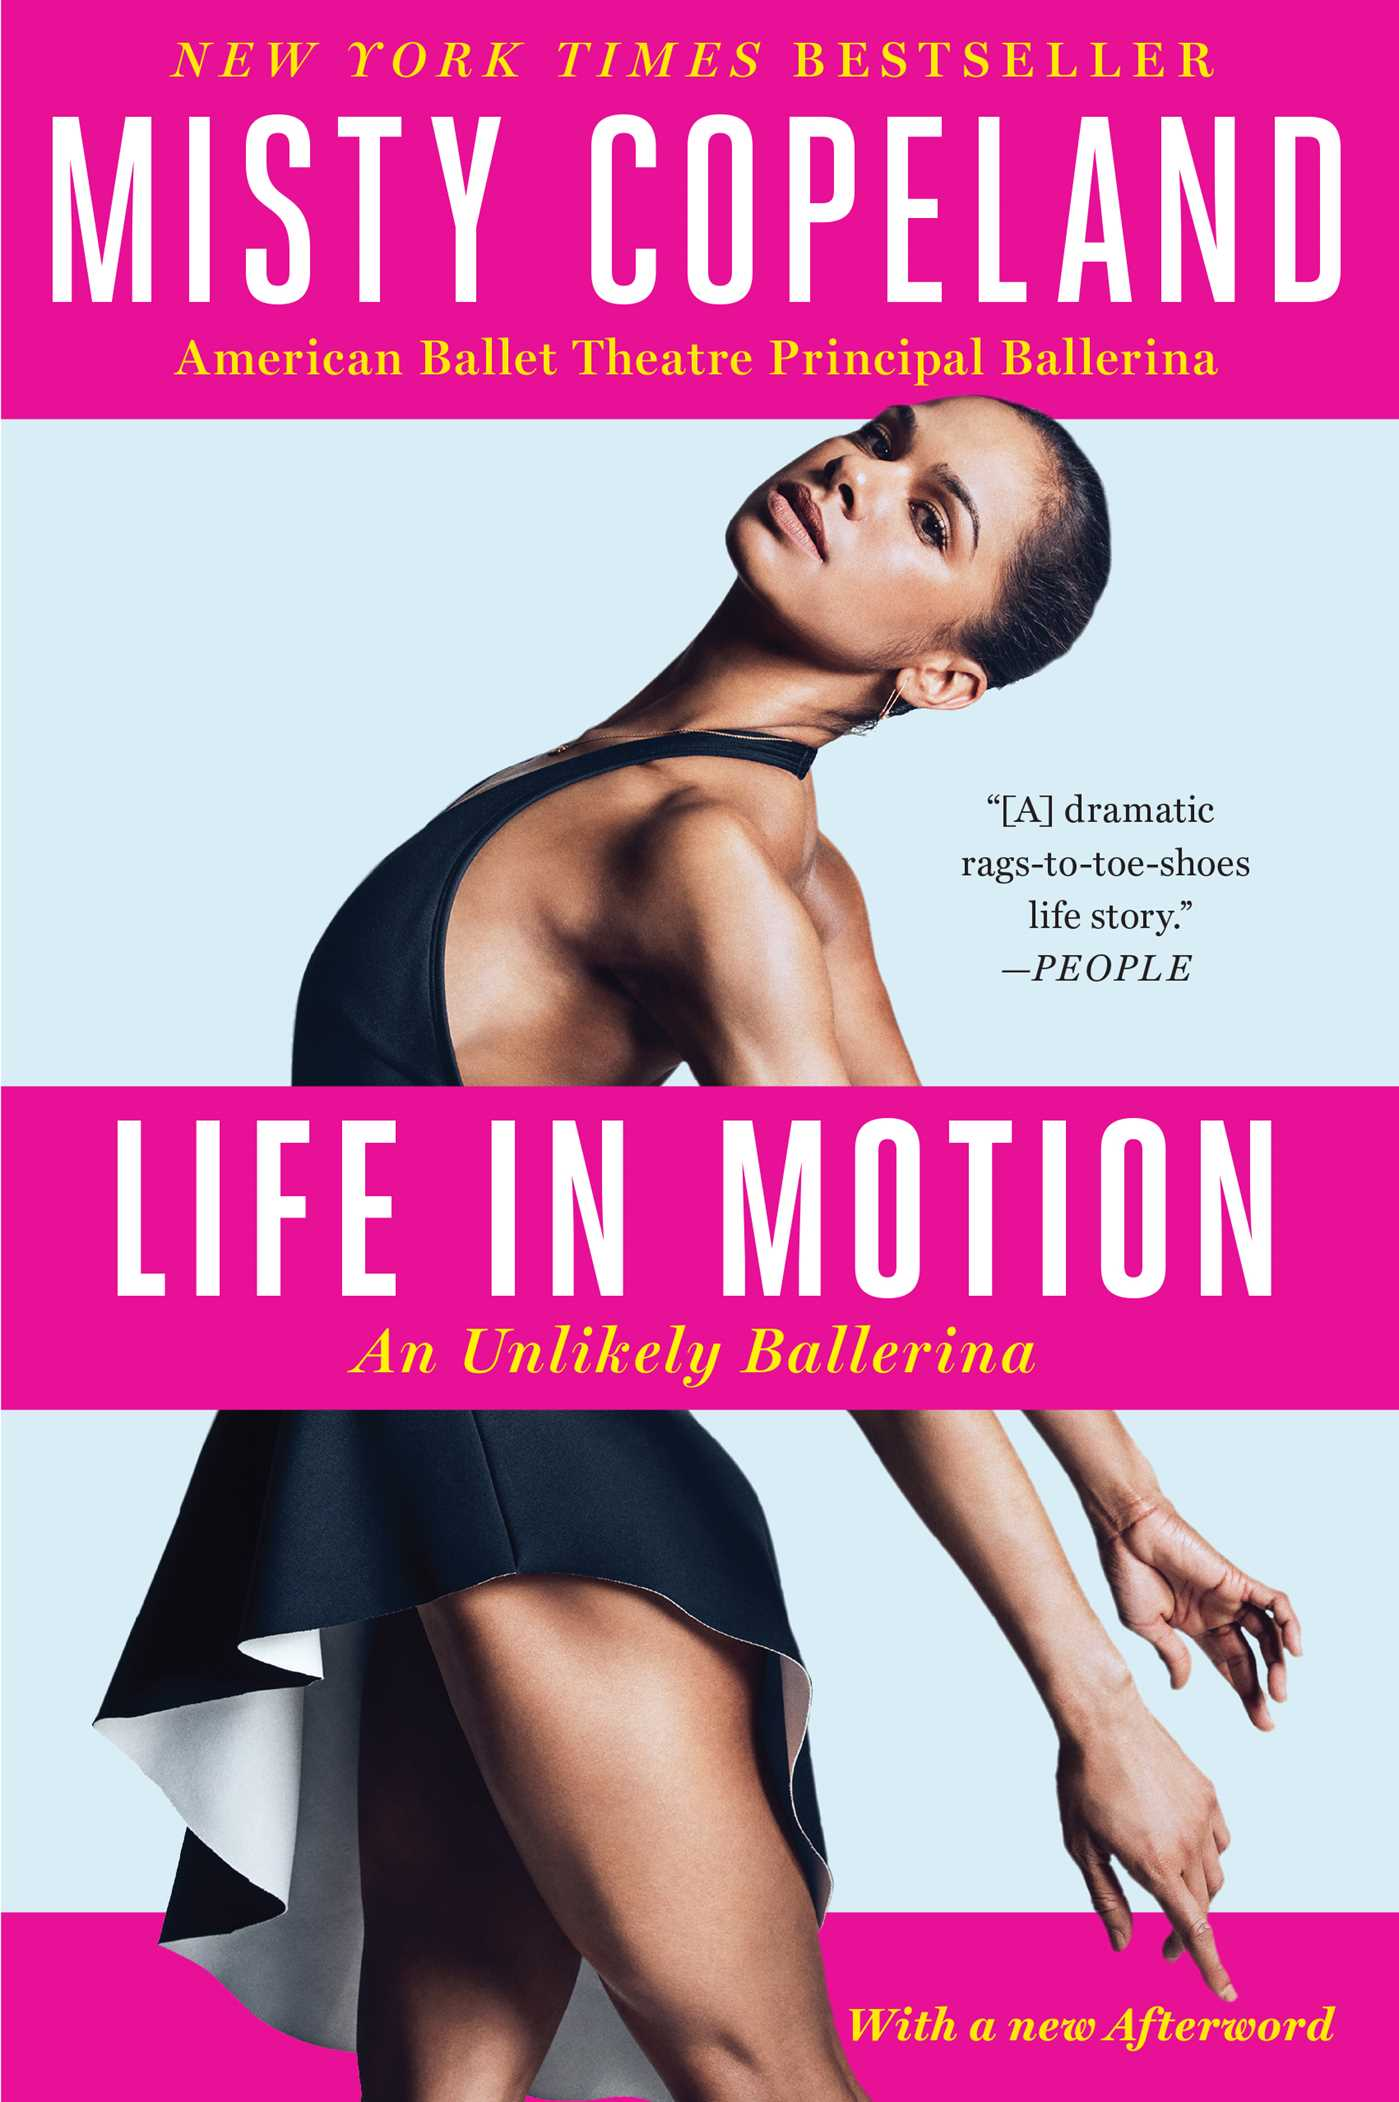 Life-in-motion-9781476737980_hr